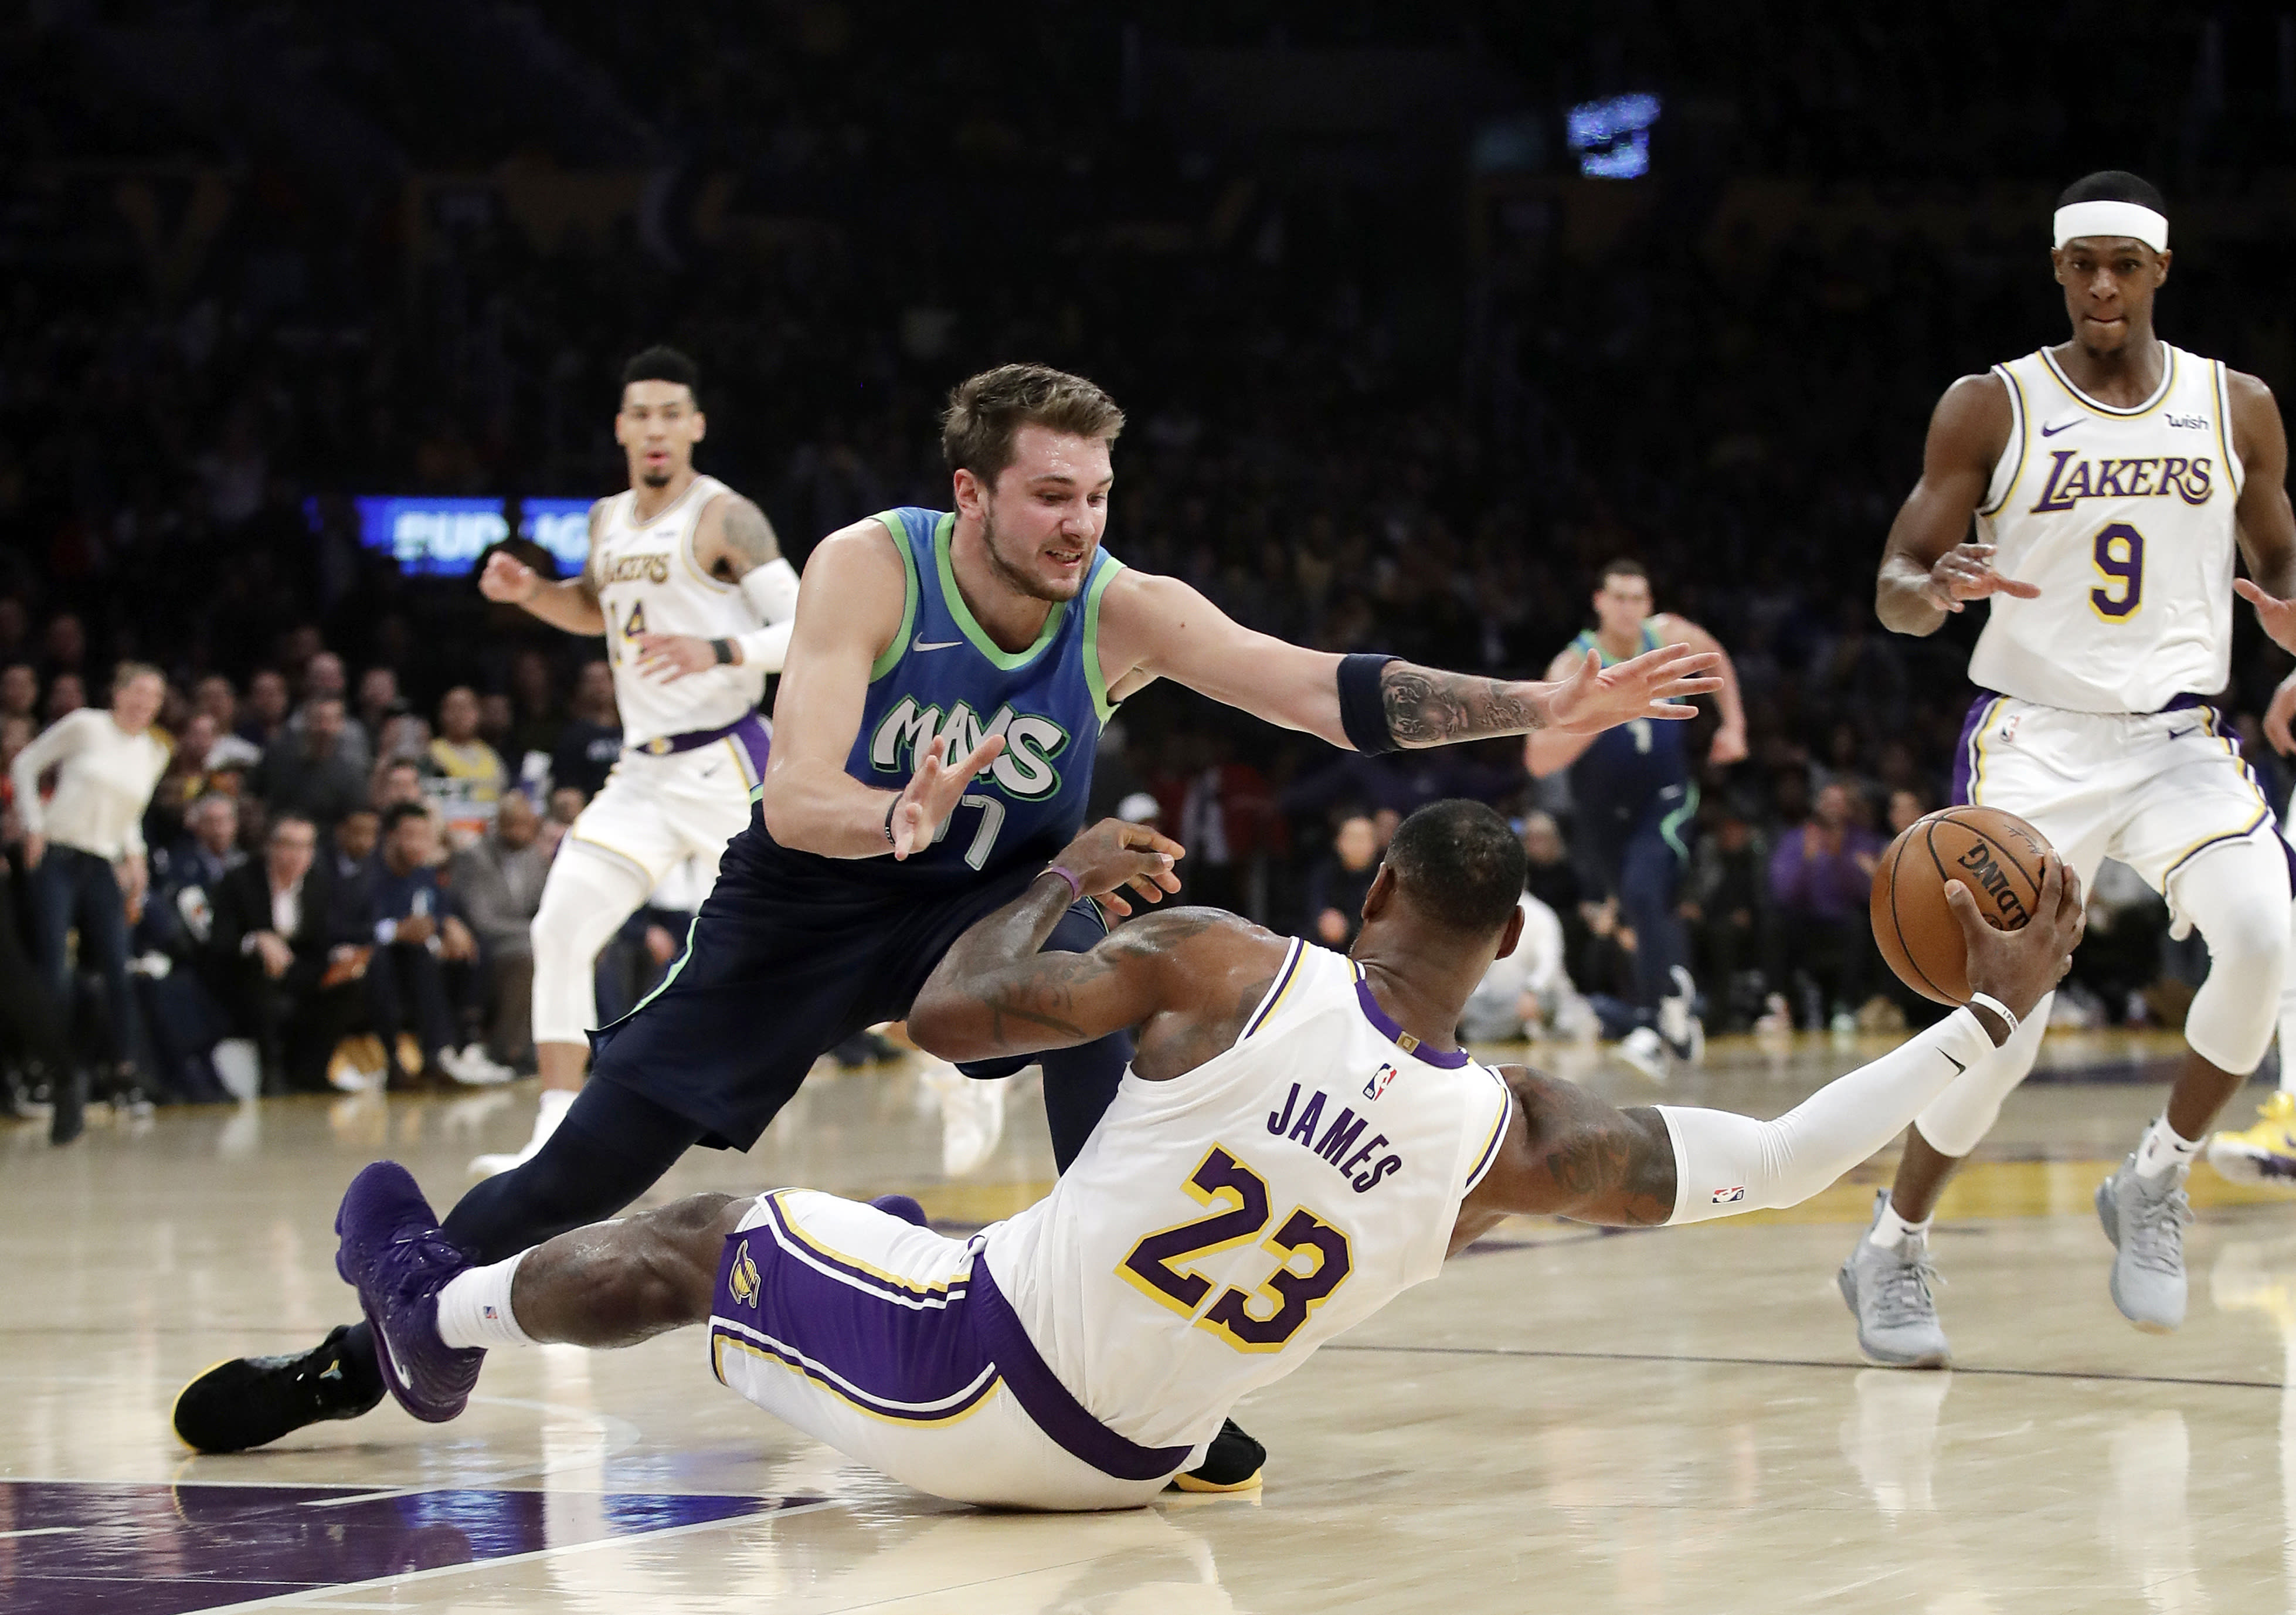 Massive Second Half Run Leads Luka Doncic Mavericks To Dominant Win Over Lakers